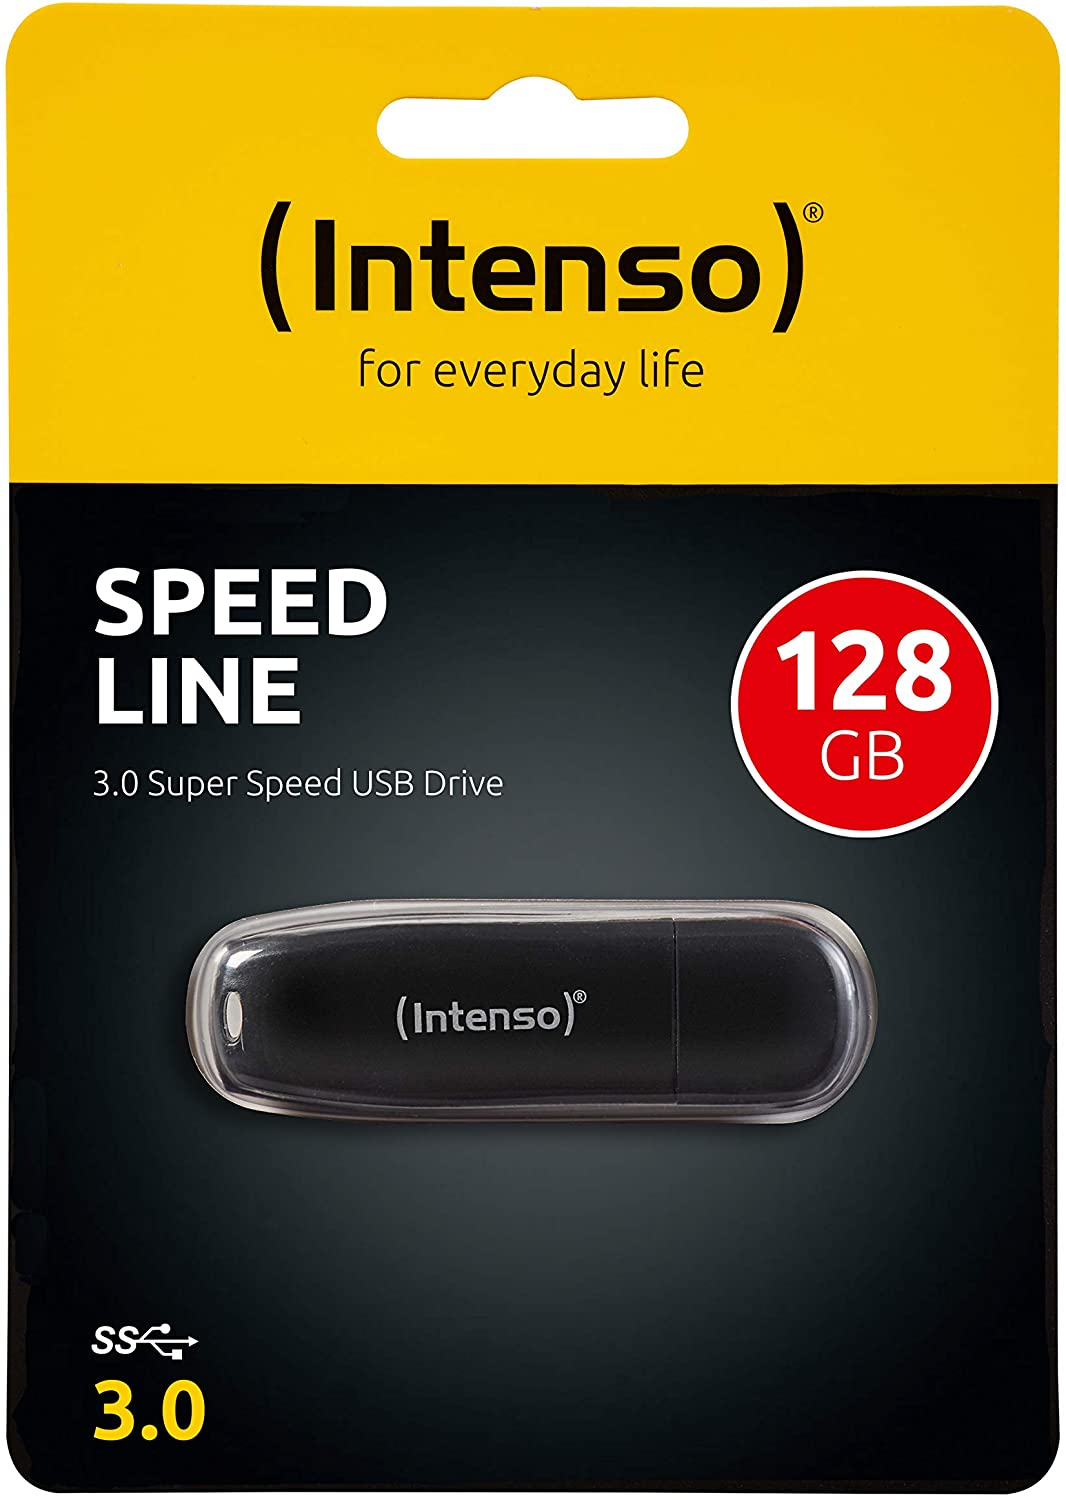 PENDRIVE INTENSO 128GB SPEED LINE USB 3.0